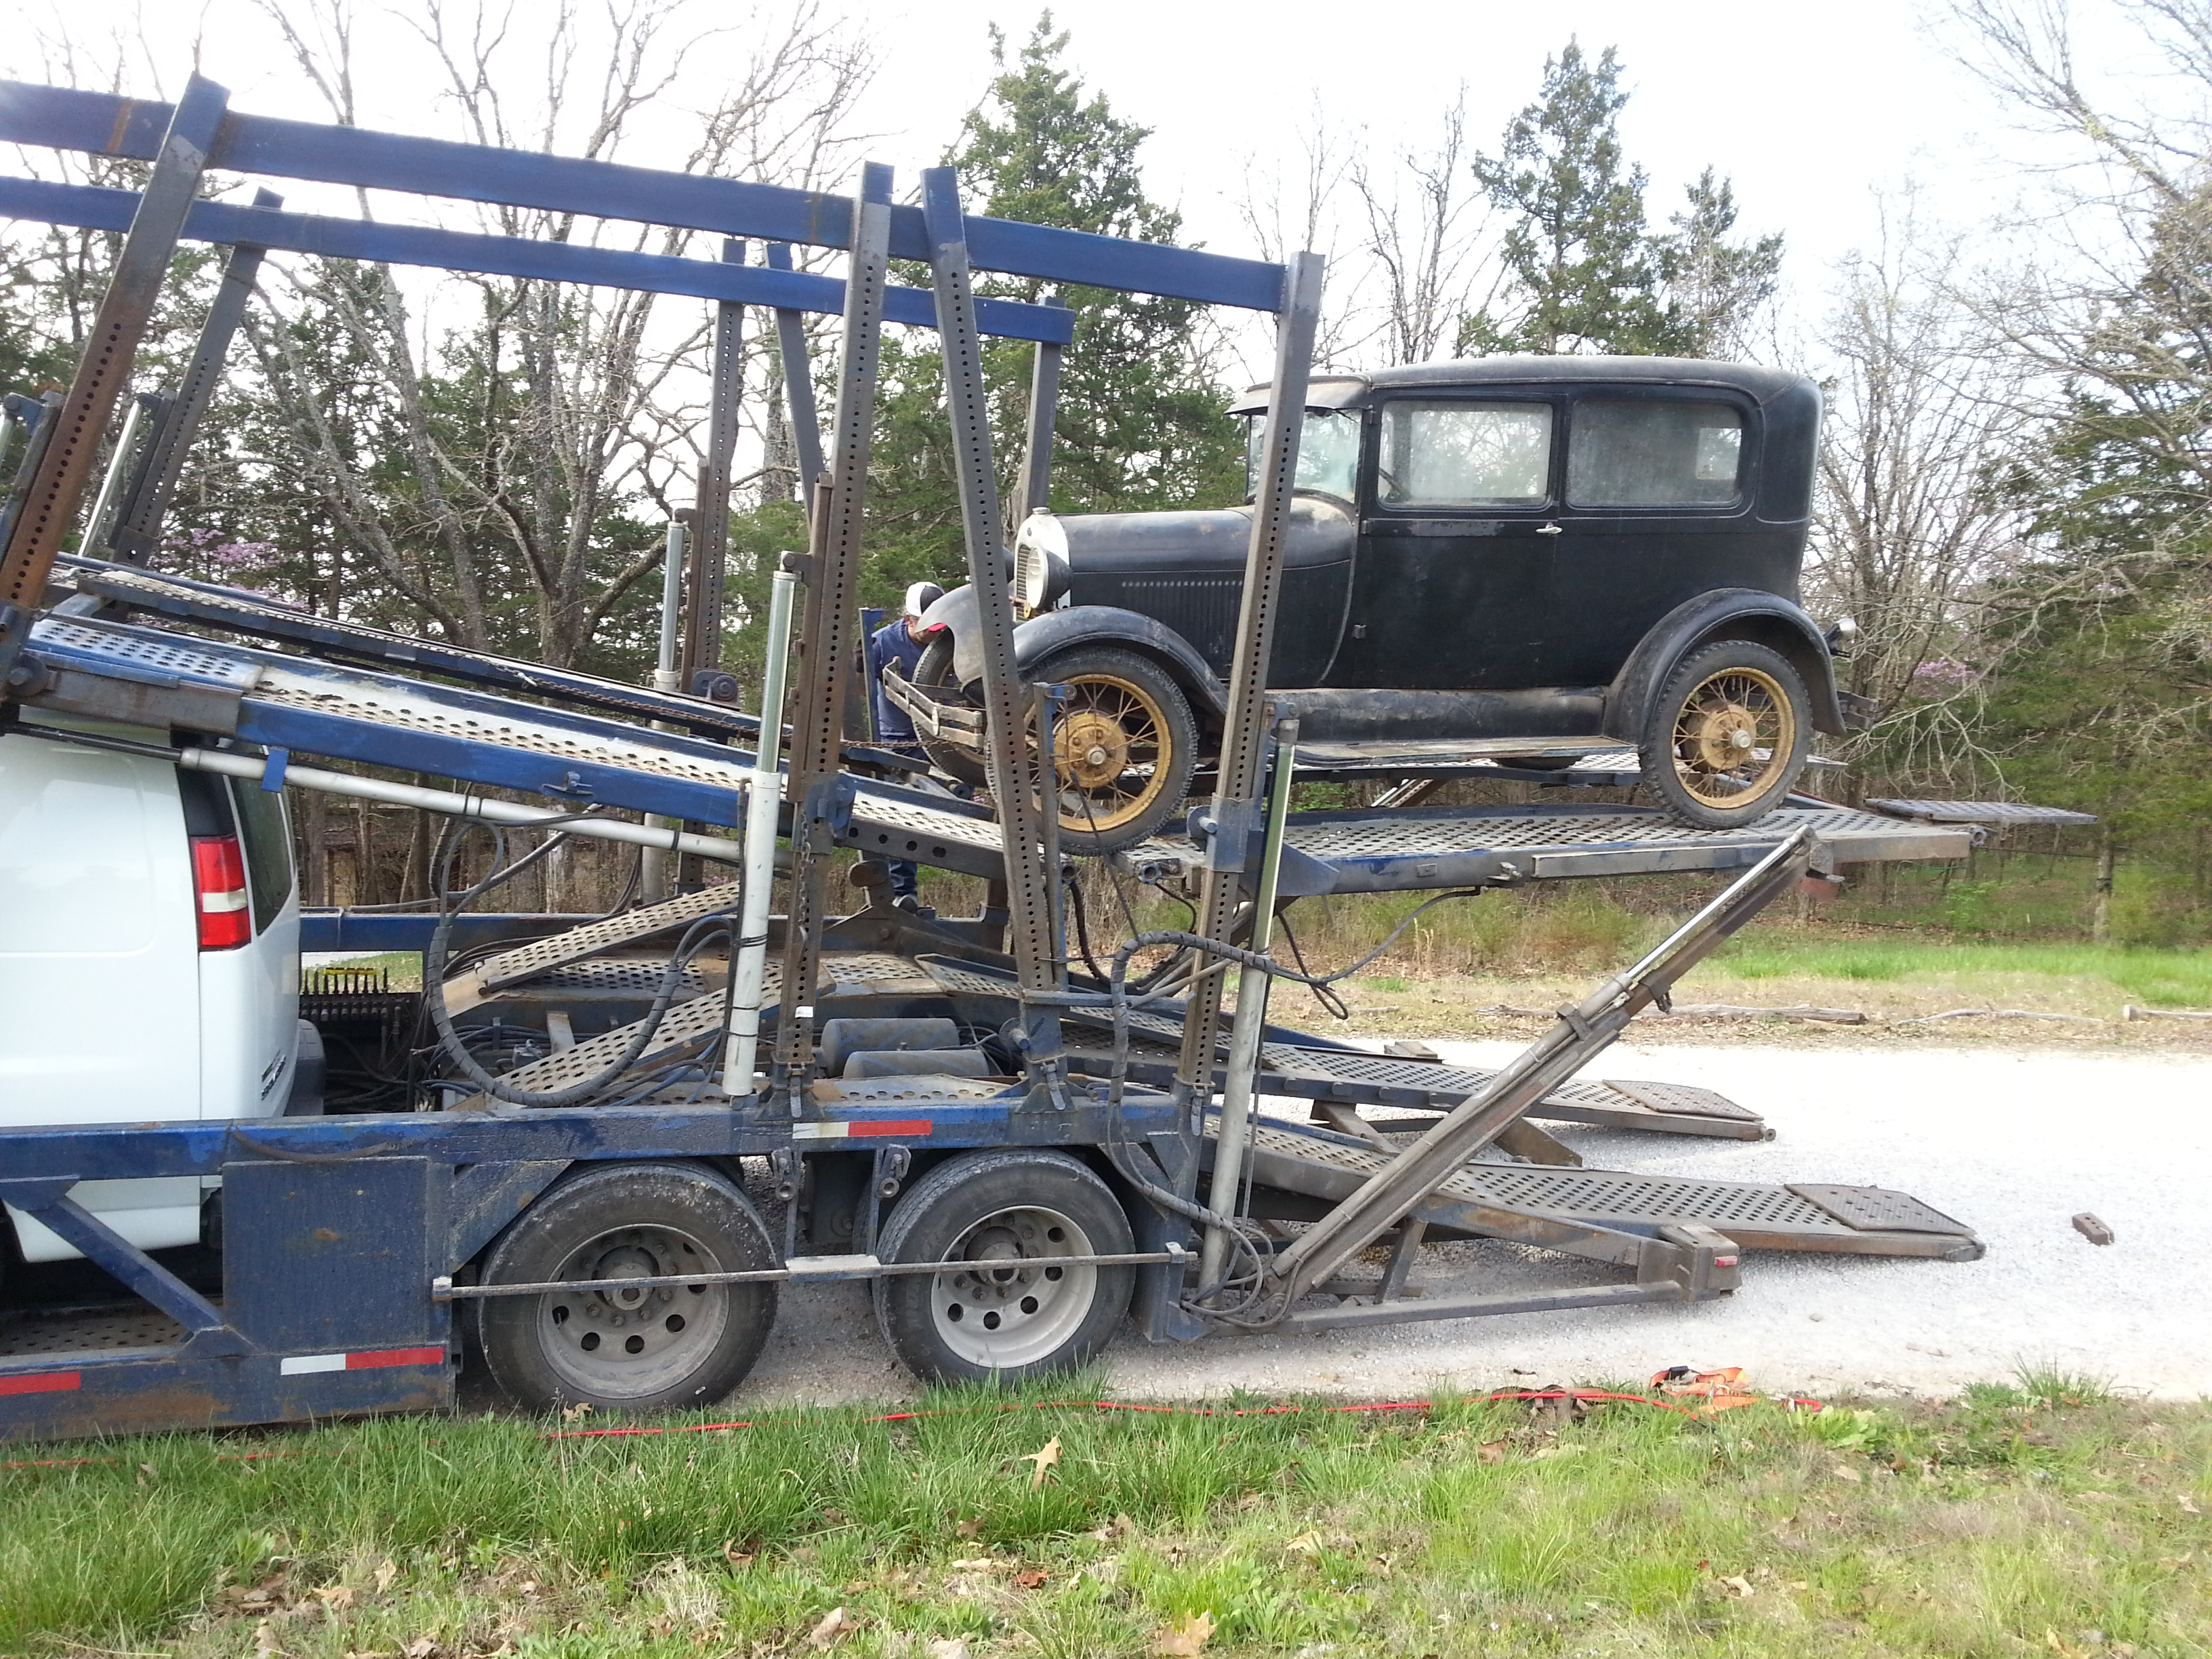 Barn Find Model A Ford Sedan Parked Since 1966 Headed for England